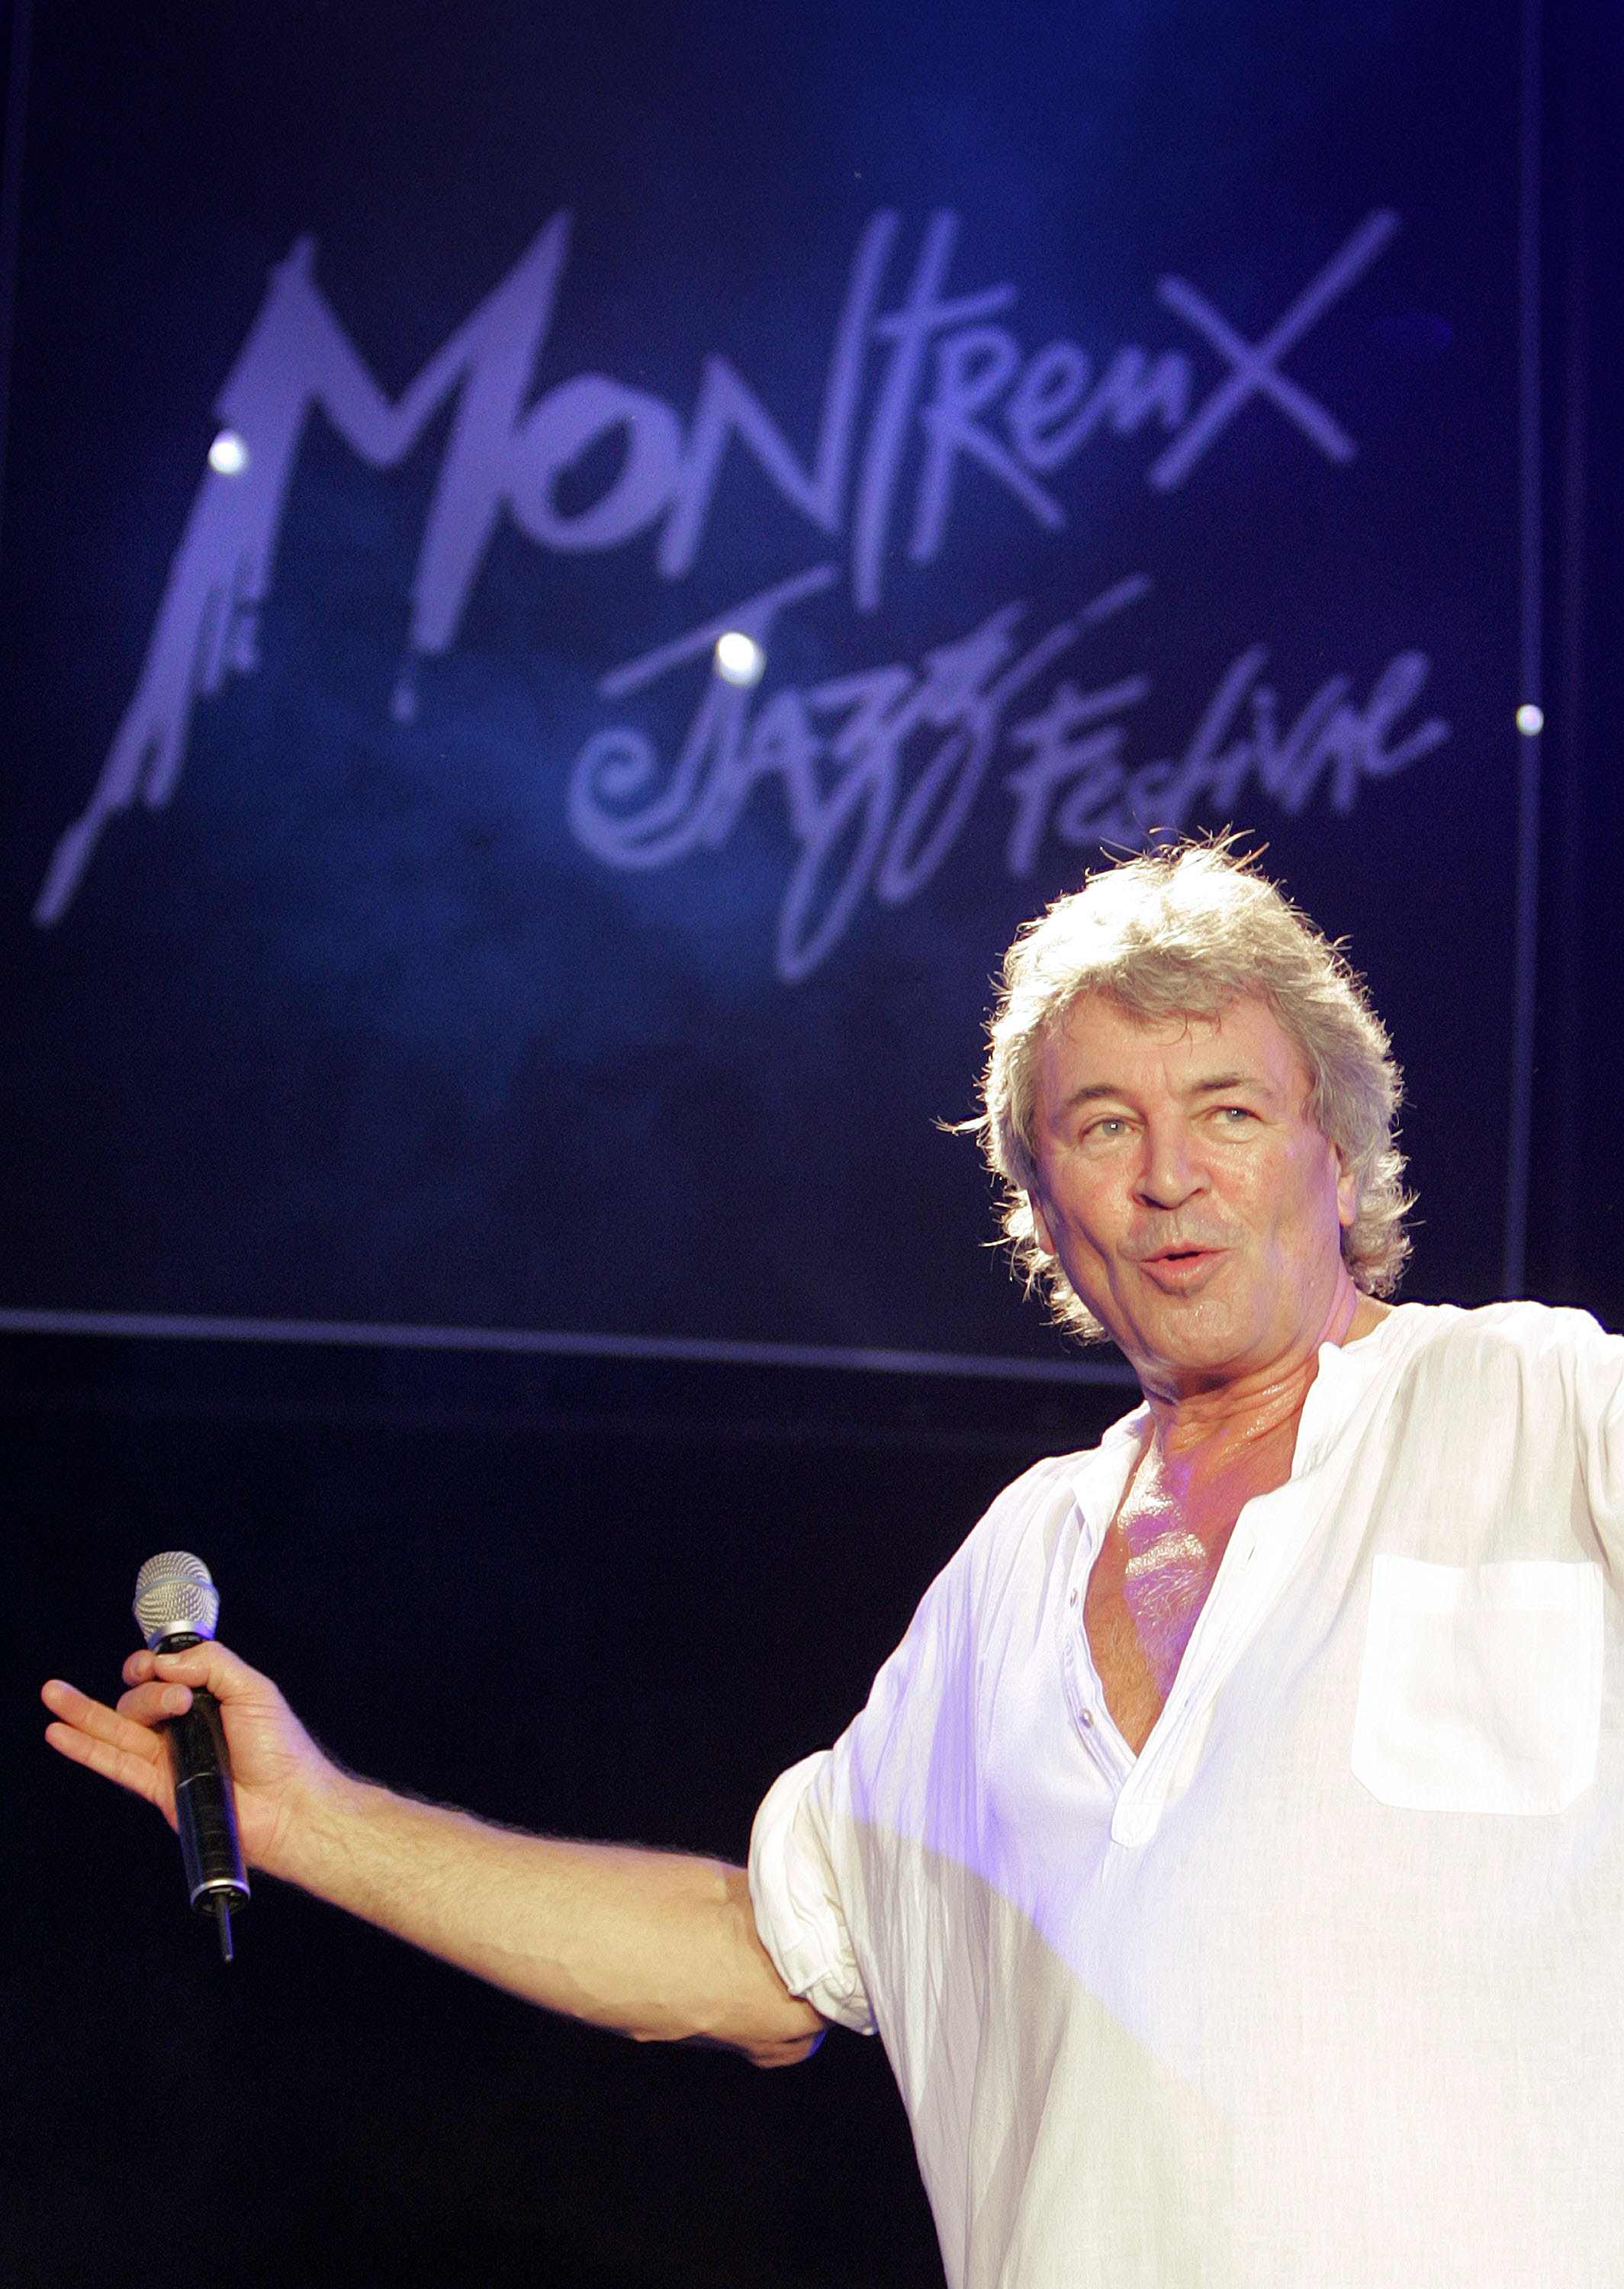 Ian Gillan of the English rock band Deep Purple performs in the Auditorium Stravinski, during the closing night of the 40th Montreux Jazz festival, 15 July 2006 in Montreux. Deep Purple's most famous song 'Smoke on the Water' tells the true story of the fire which burned on December 1971 the Montreux Casino during Frank Zappa's concert, and Deep Purple's difficulties recording their Machine Head album. AFP PHOTO / FABRICE COFFRINI (Photo credit should read FABRICE COFFRINI/AFP via Getty Images)